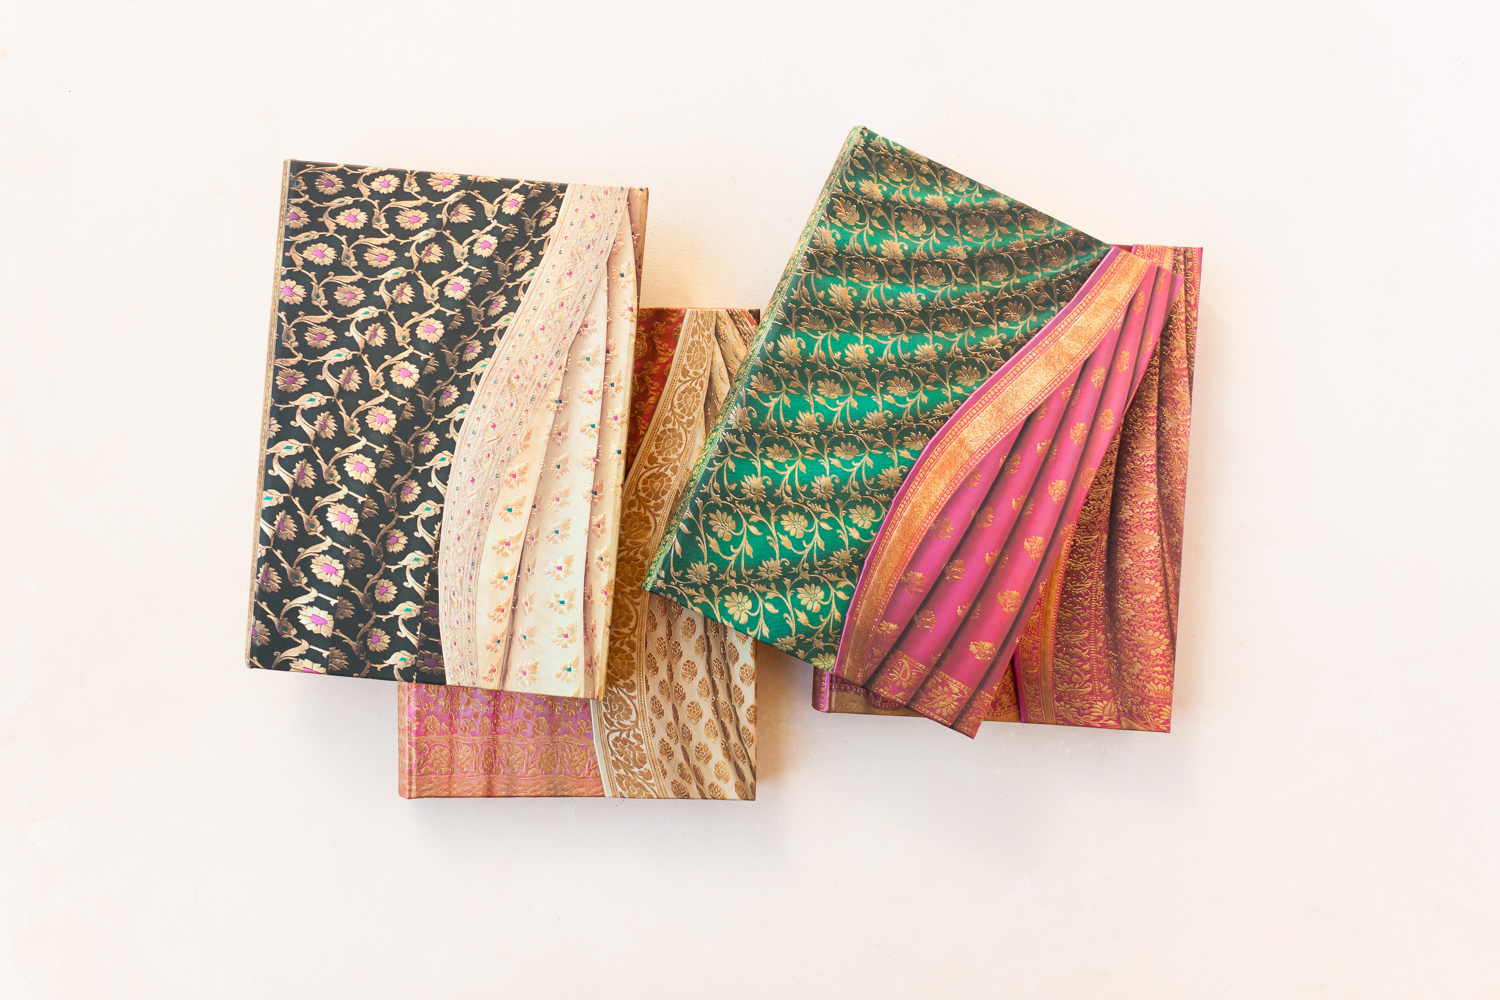 Varanasi Silks and Saris